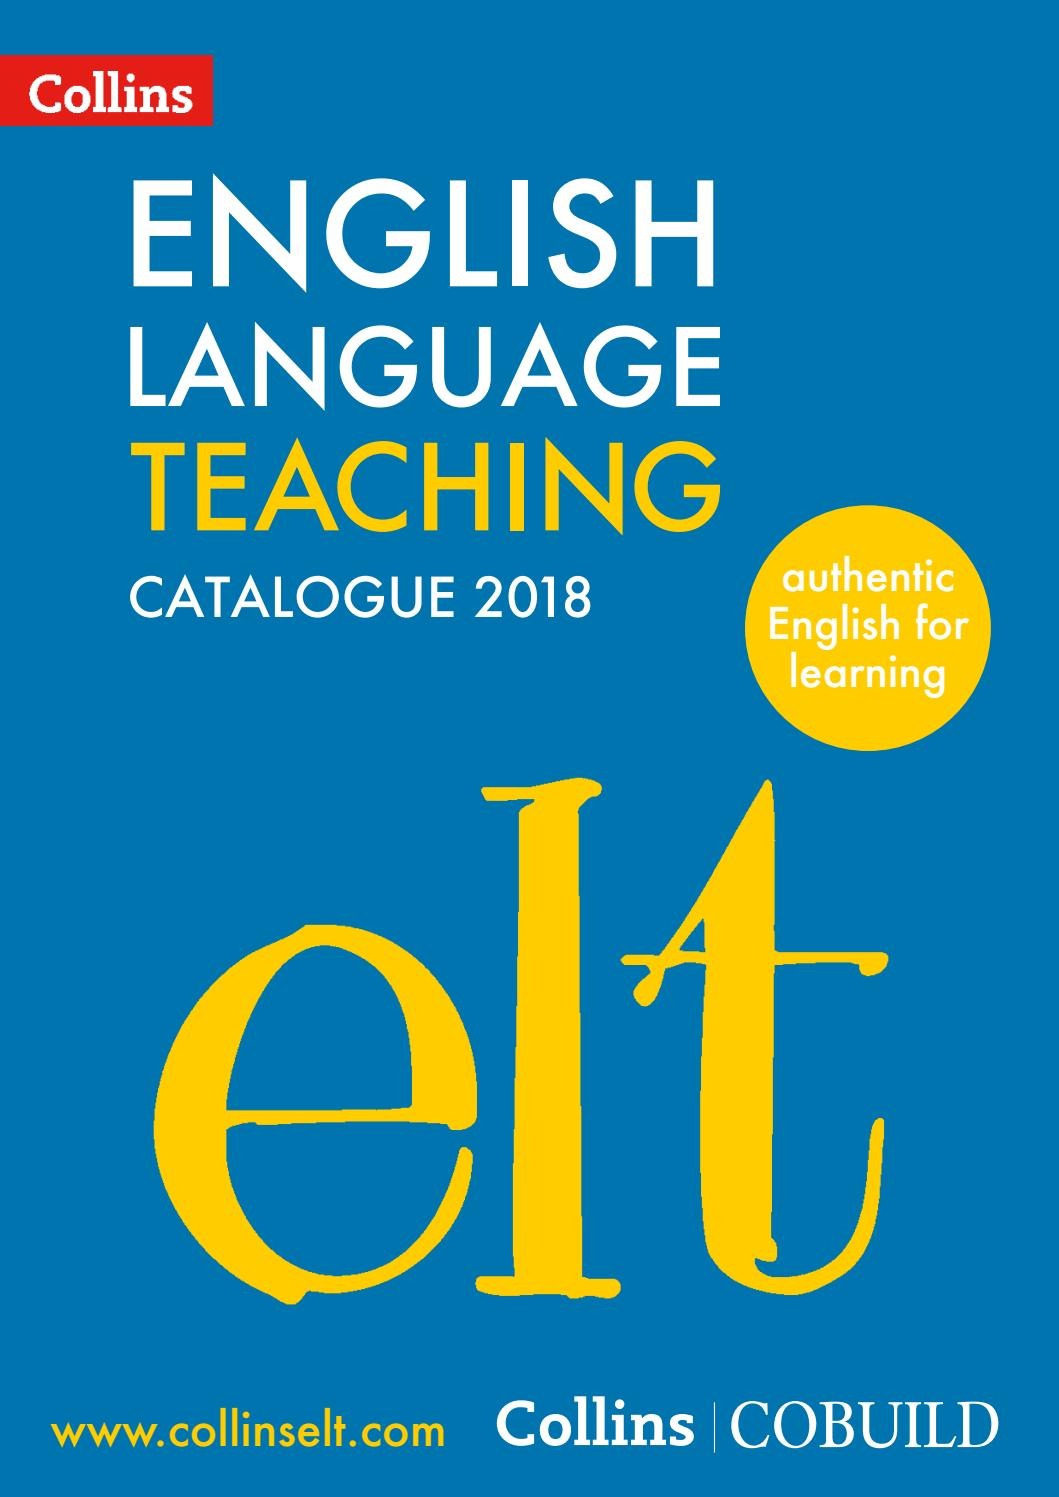 ELT Catalogue 2018 by Collins - issuu